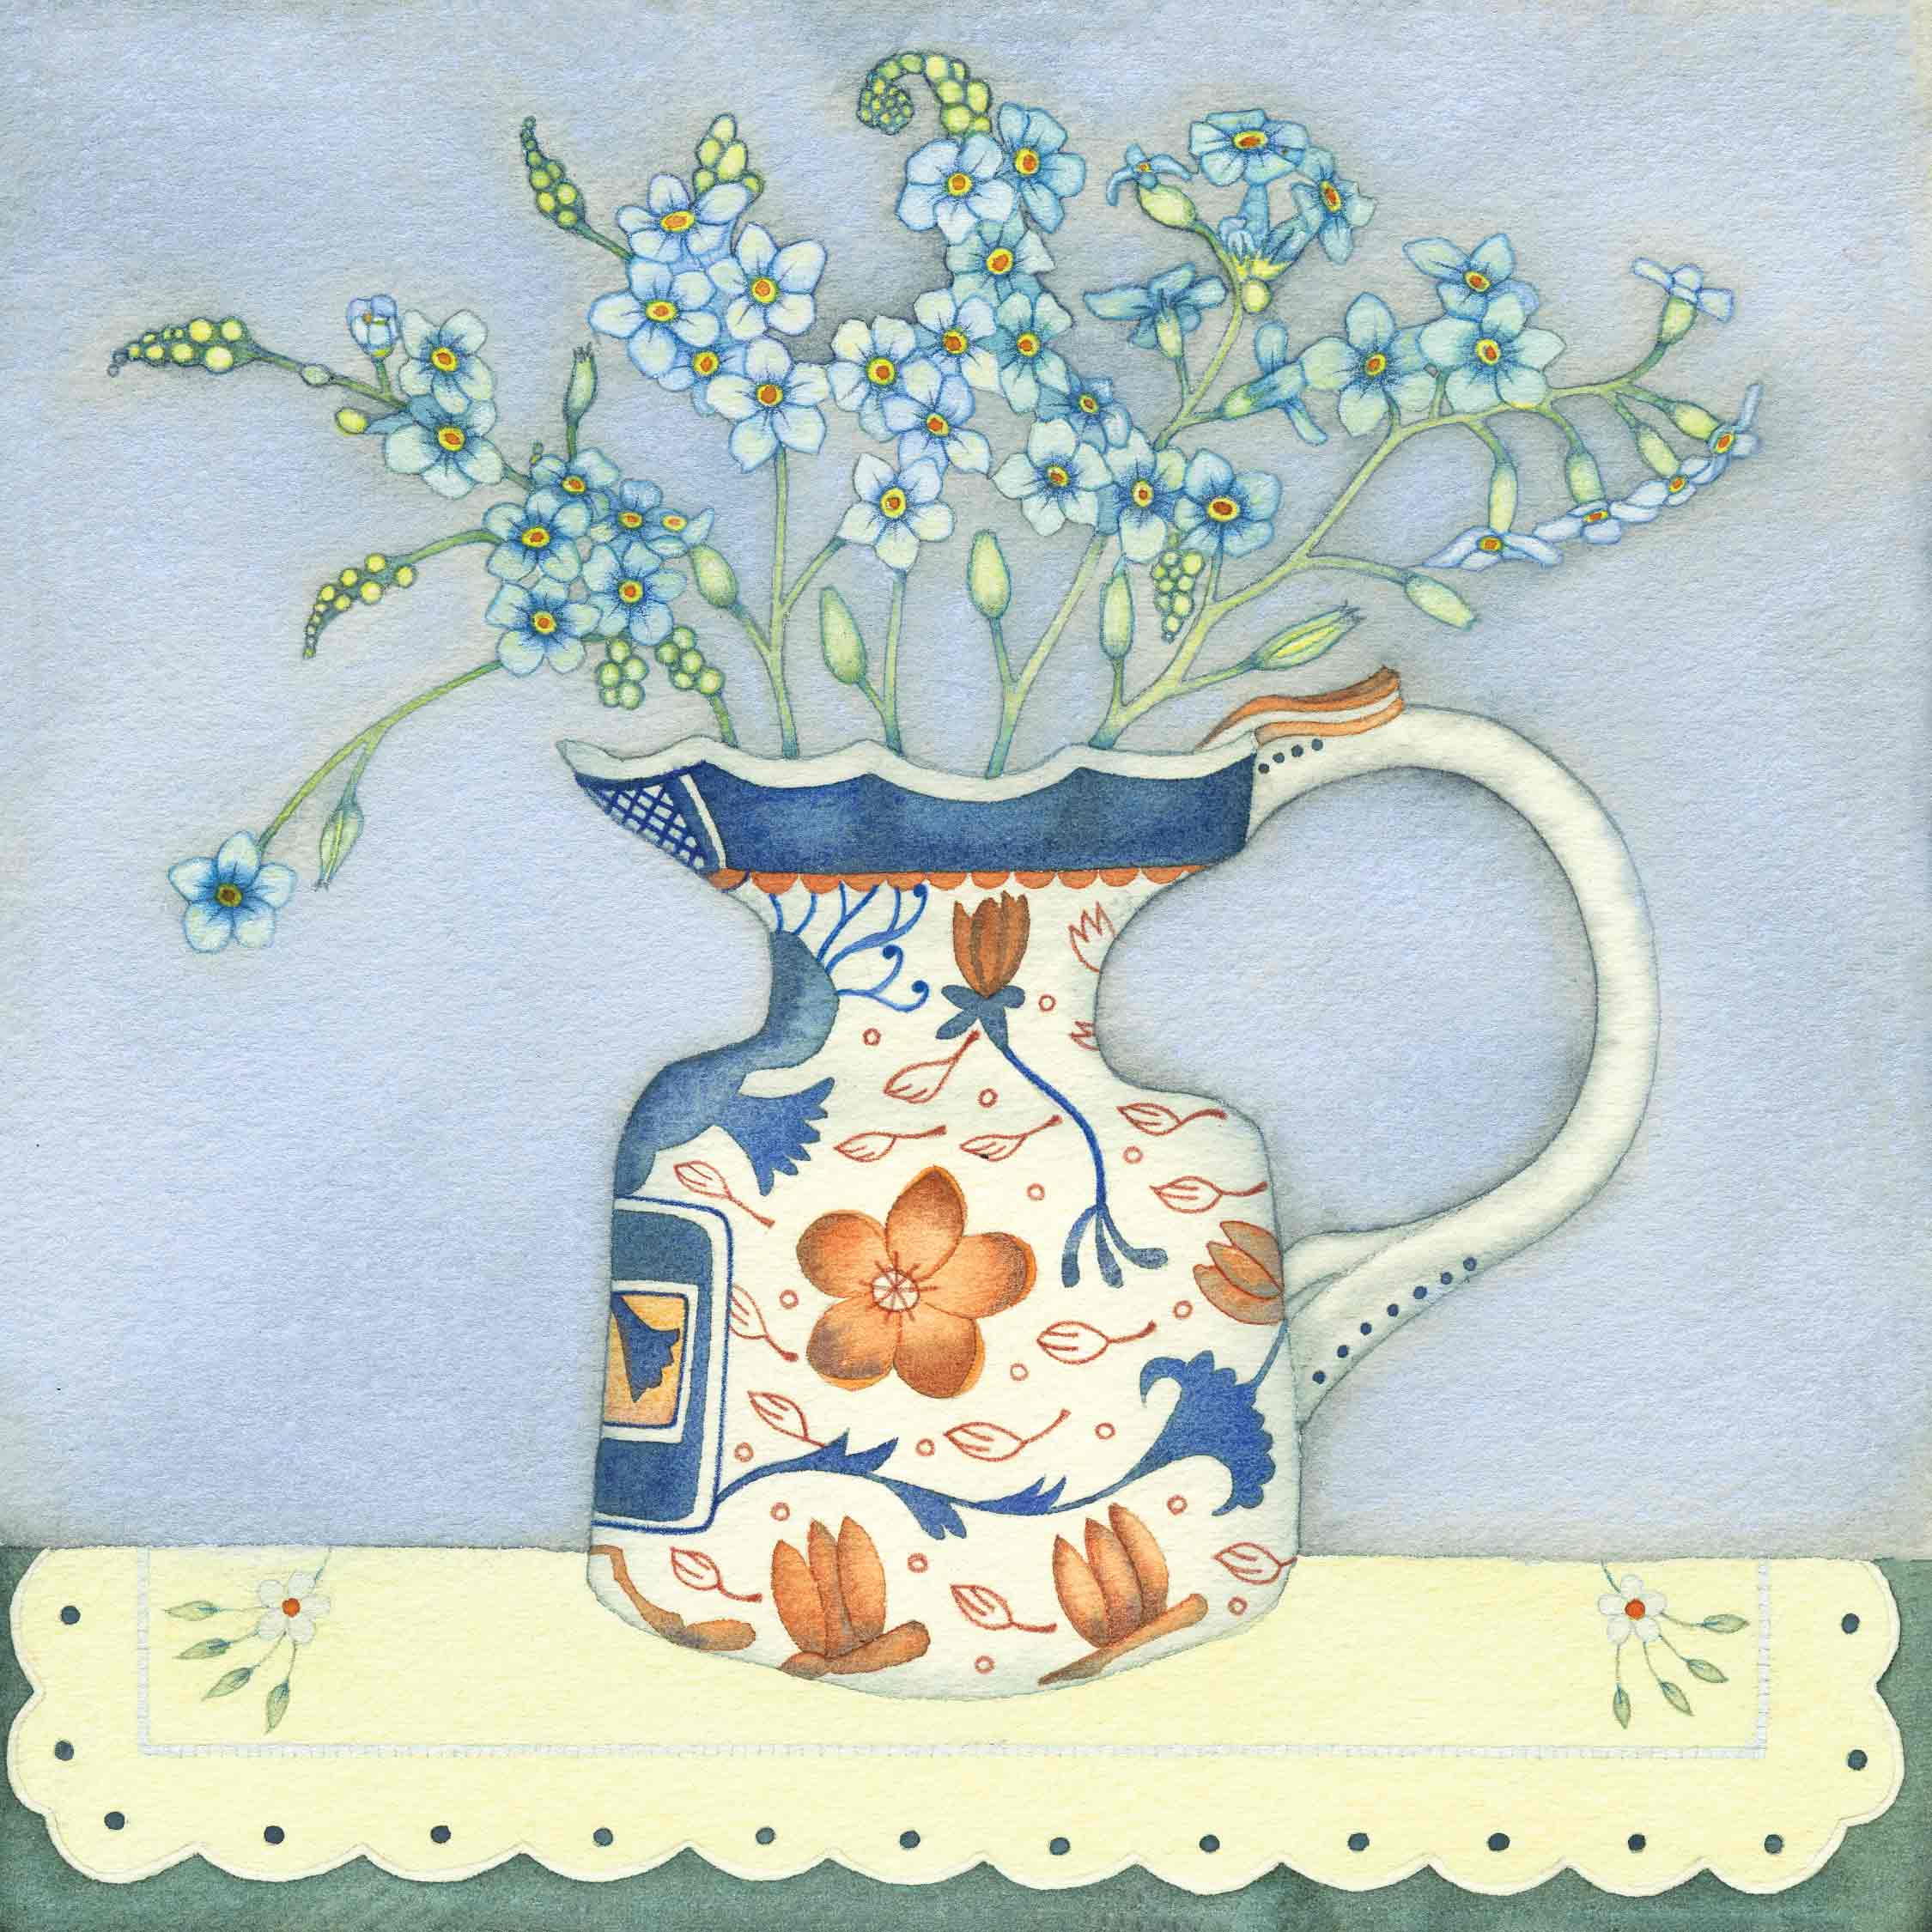 Art Greeting Card by Kate Green, Forget-me-nots, mixed media, forget-me-nots in jug